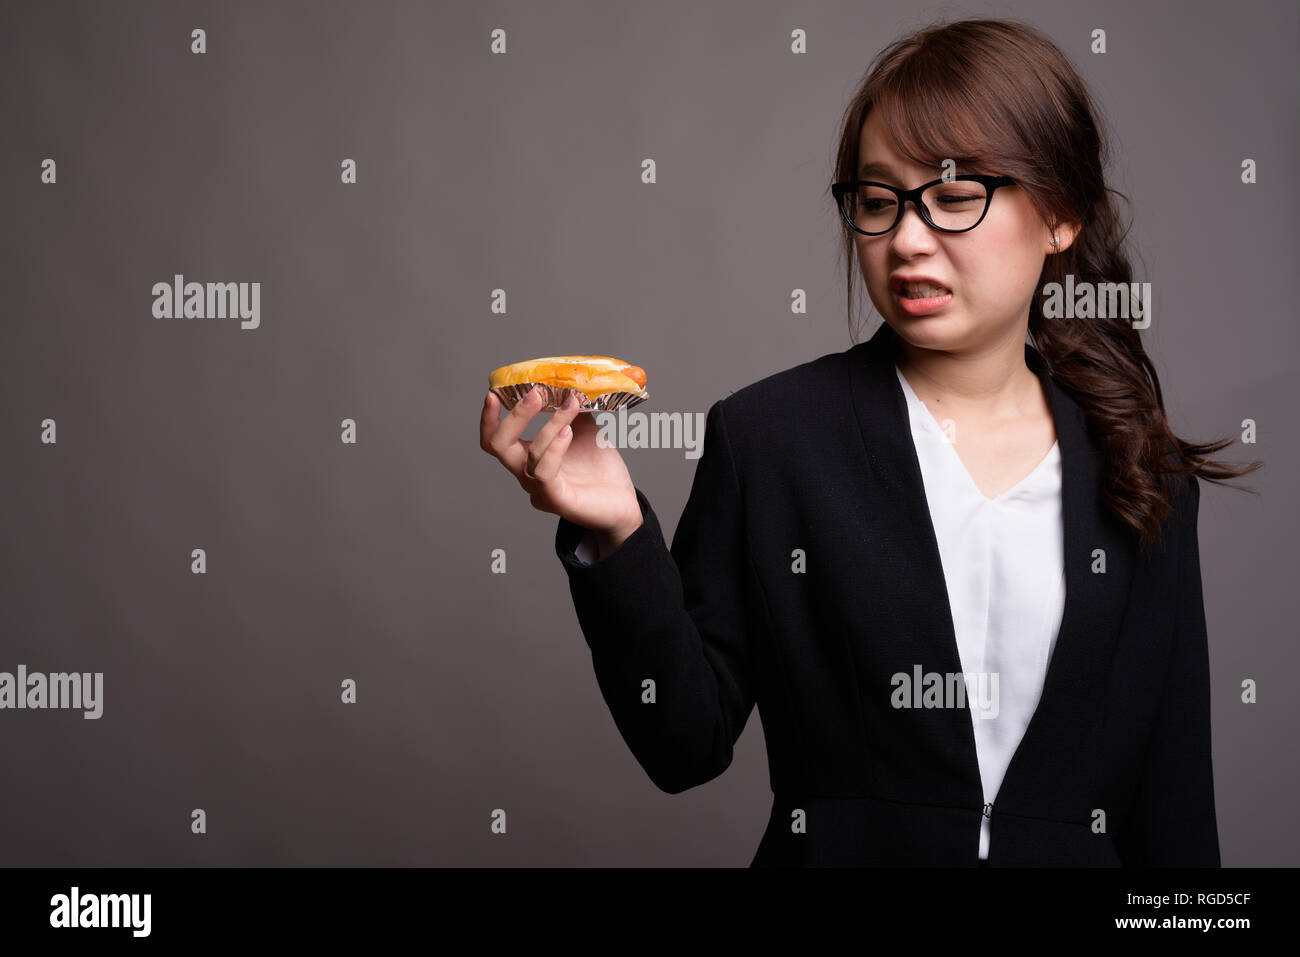 Disgusted looking Asian businesswoman holding hotdog in studio - Stock Image